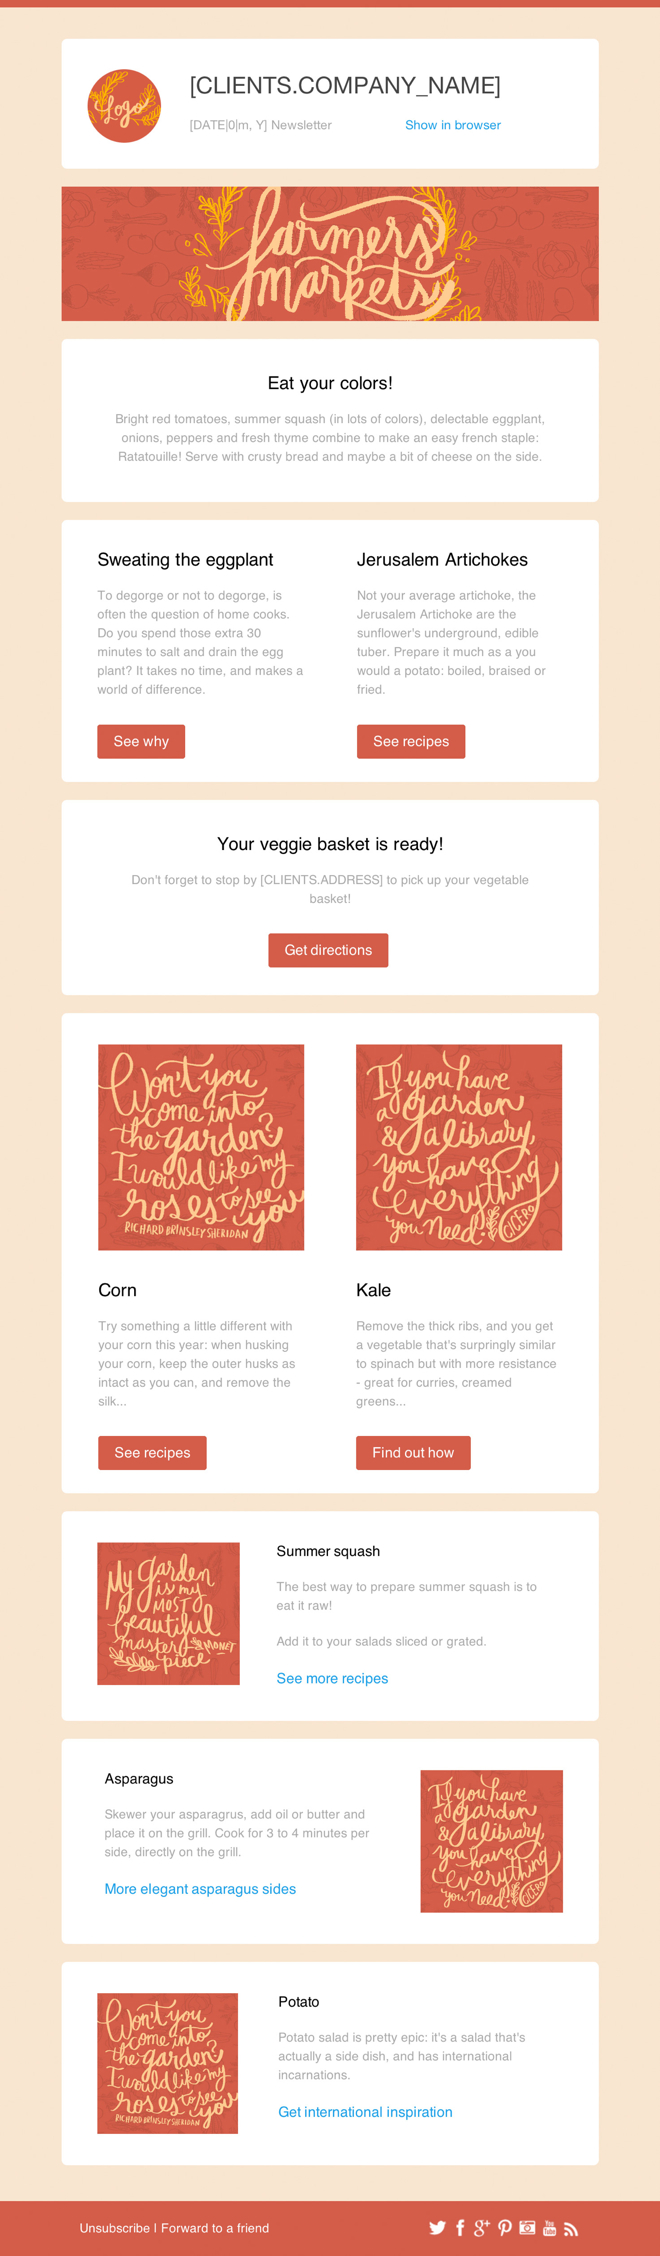 Newsletter Templates Free | Business Newsletter Free Email Templates Cakemail